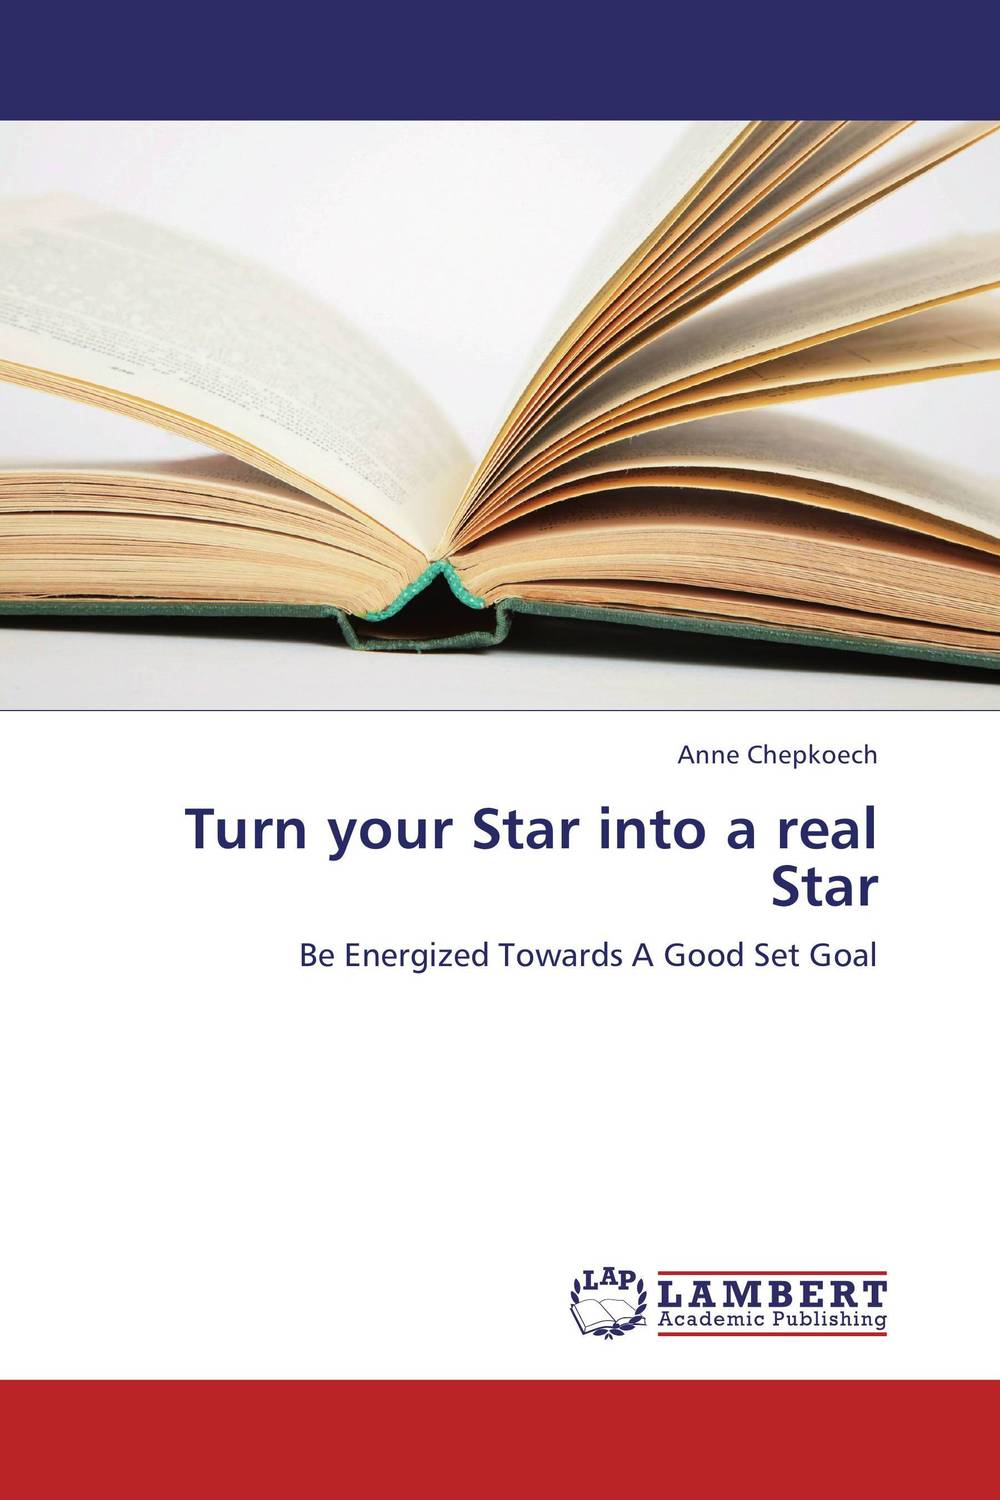 Turn your Star into a real Star